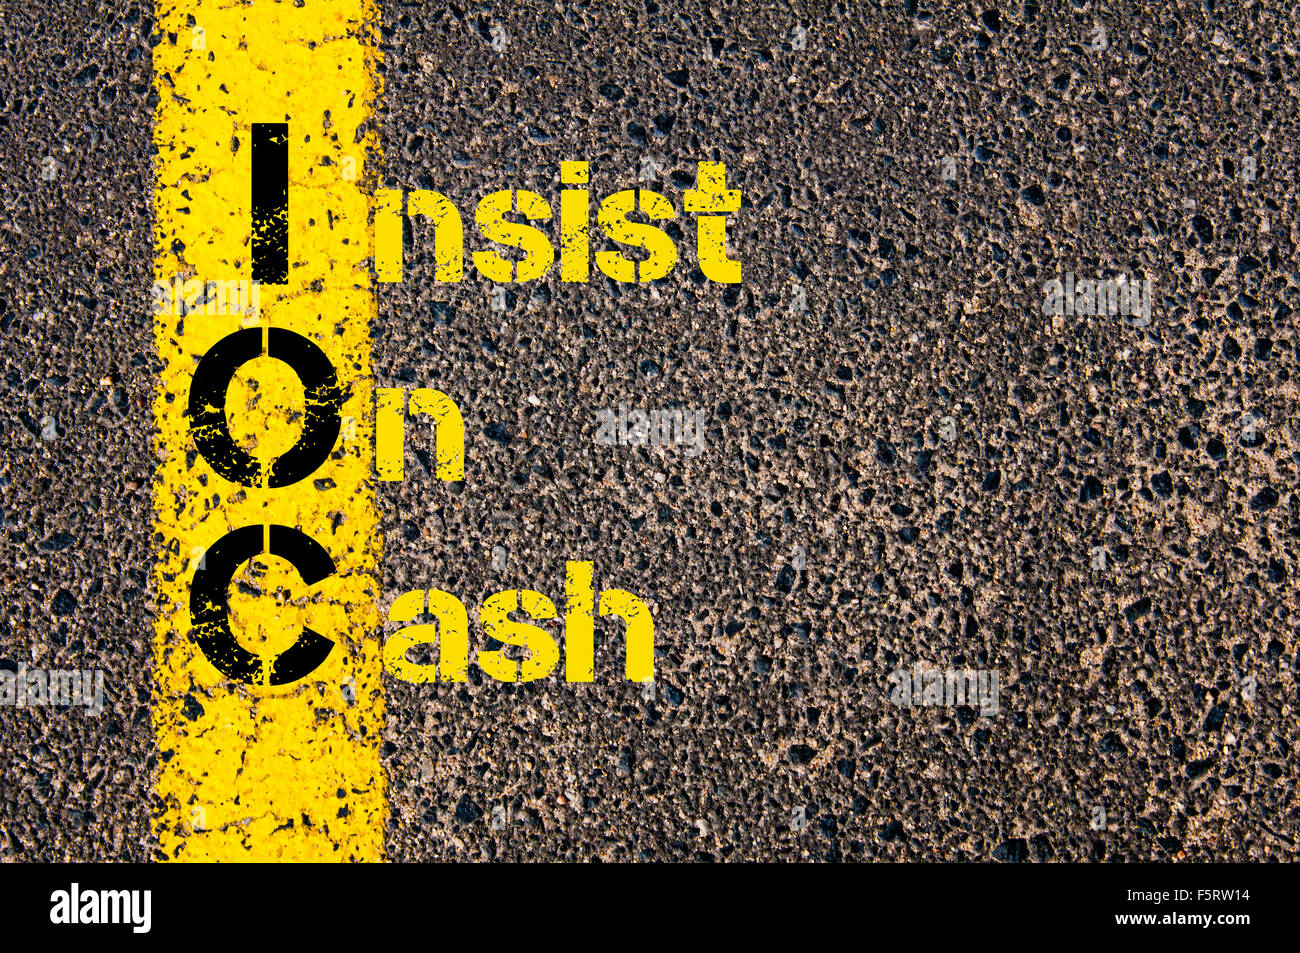 Concept image of Business Acronym IOC as Insist On Cash written over road marking yellow paint line. - Stock Image